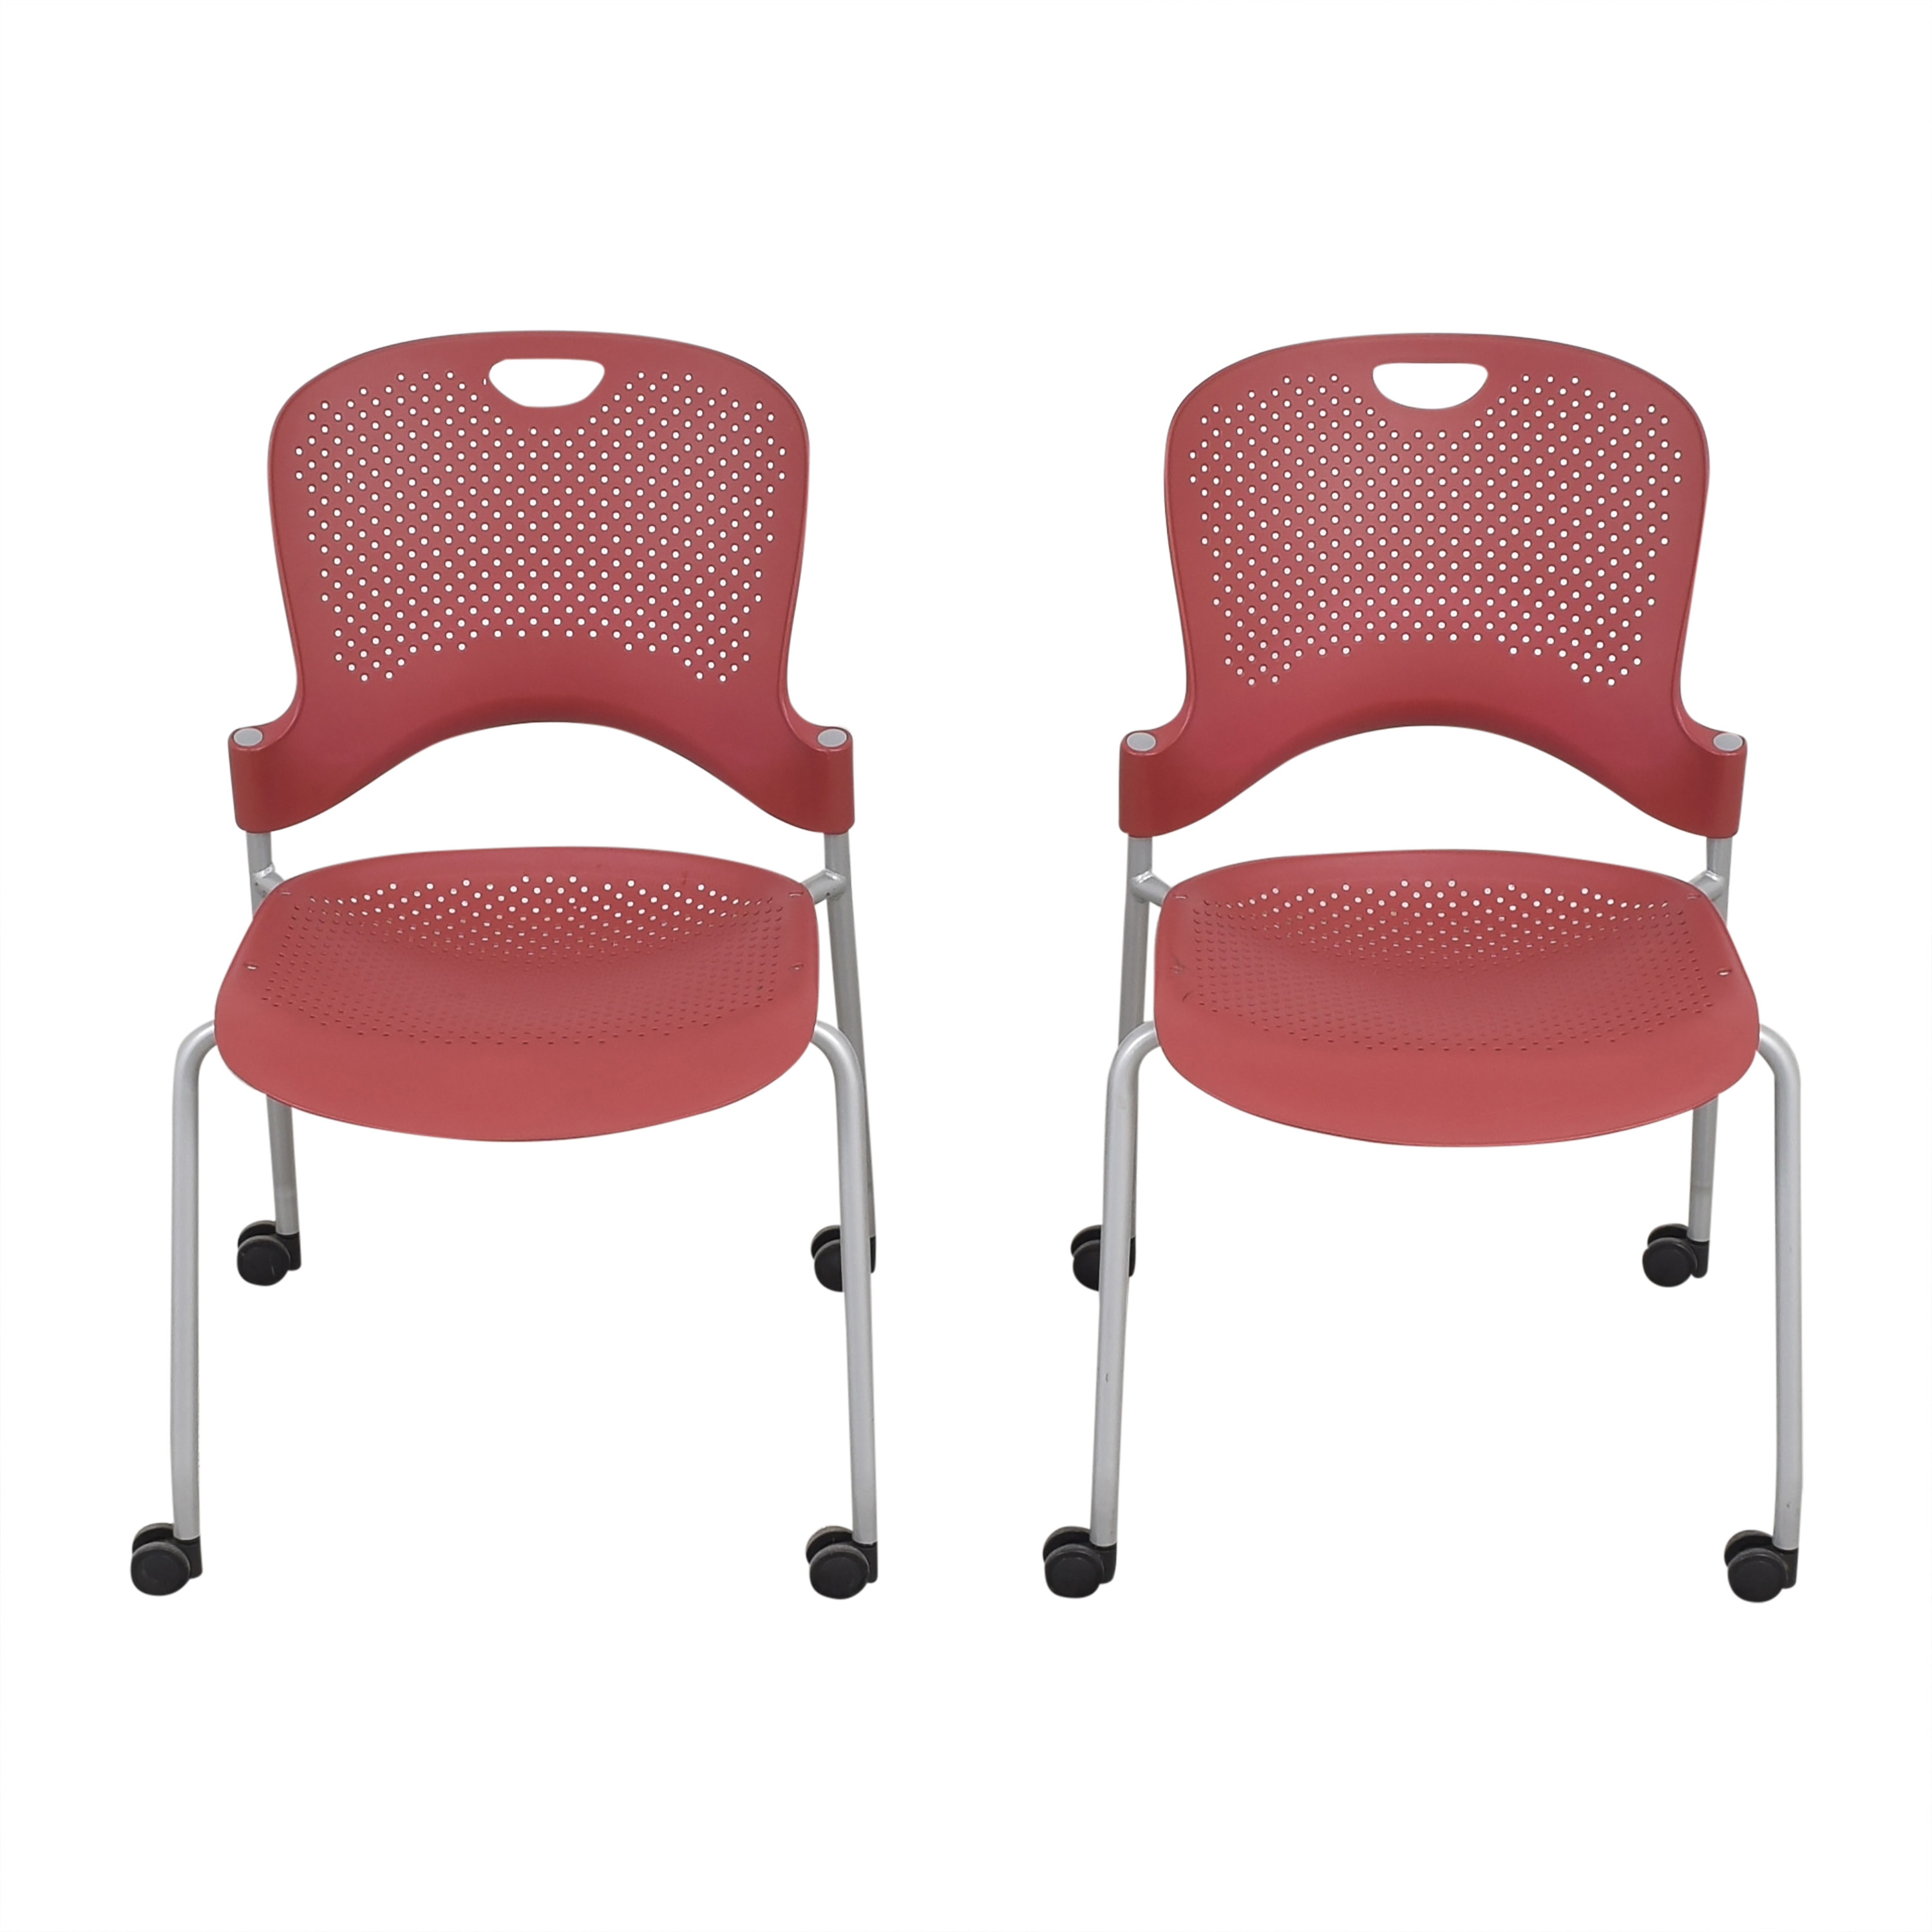 Herman Miller Herman Miller Caper Stacking Chairs nyc